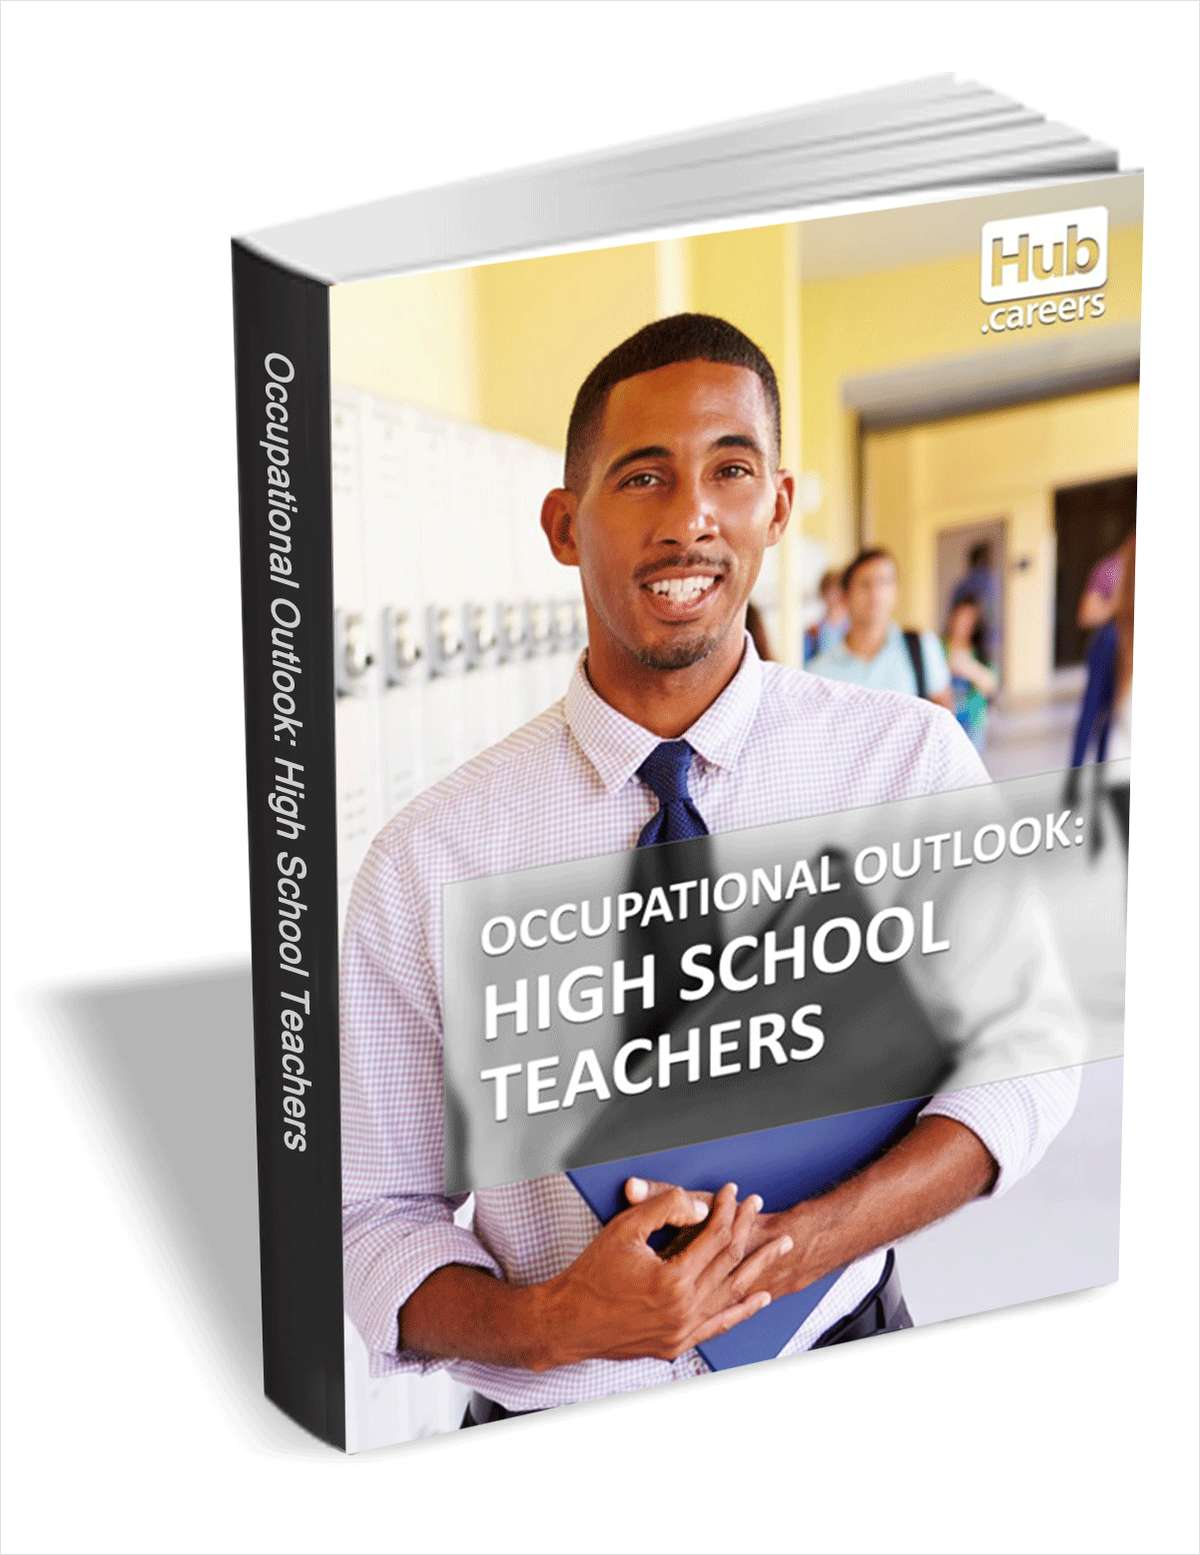 High School Teachers - Occupational Outlook